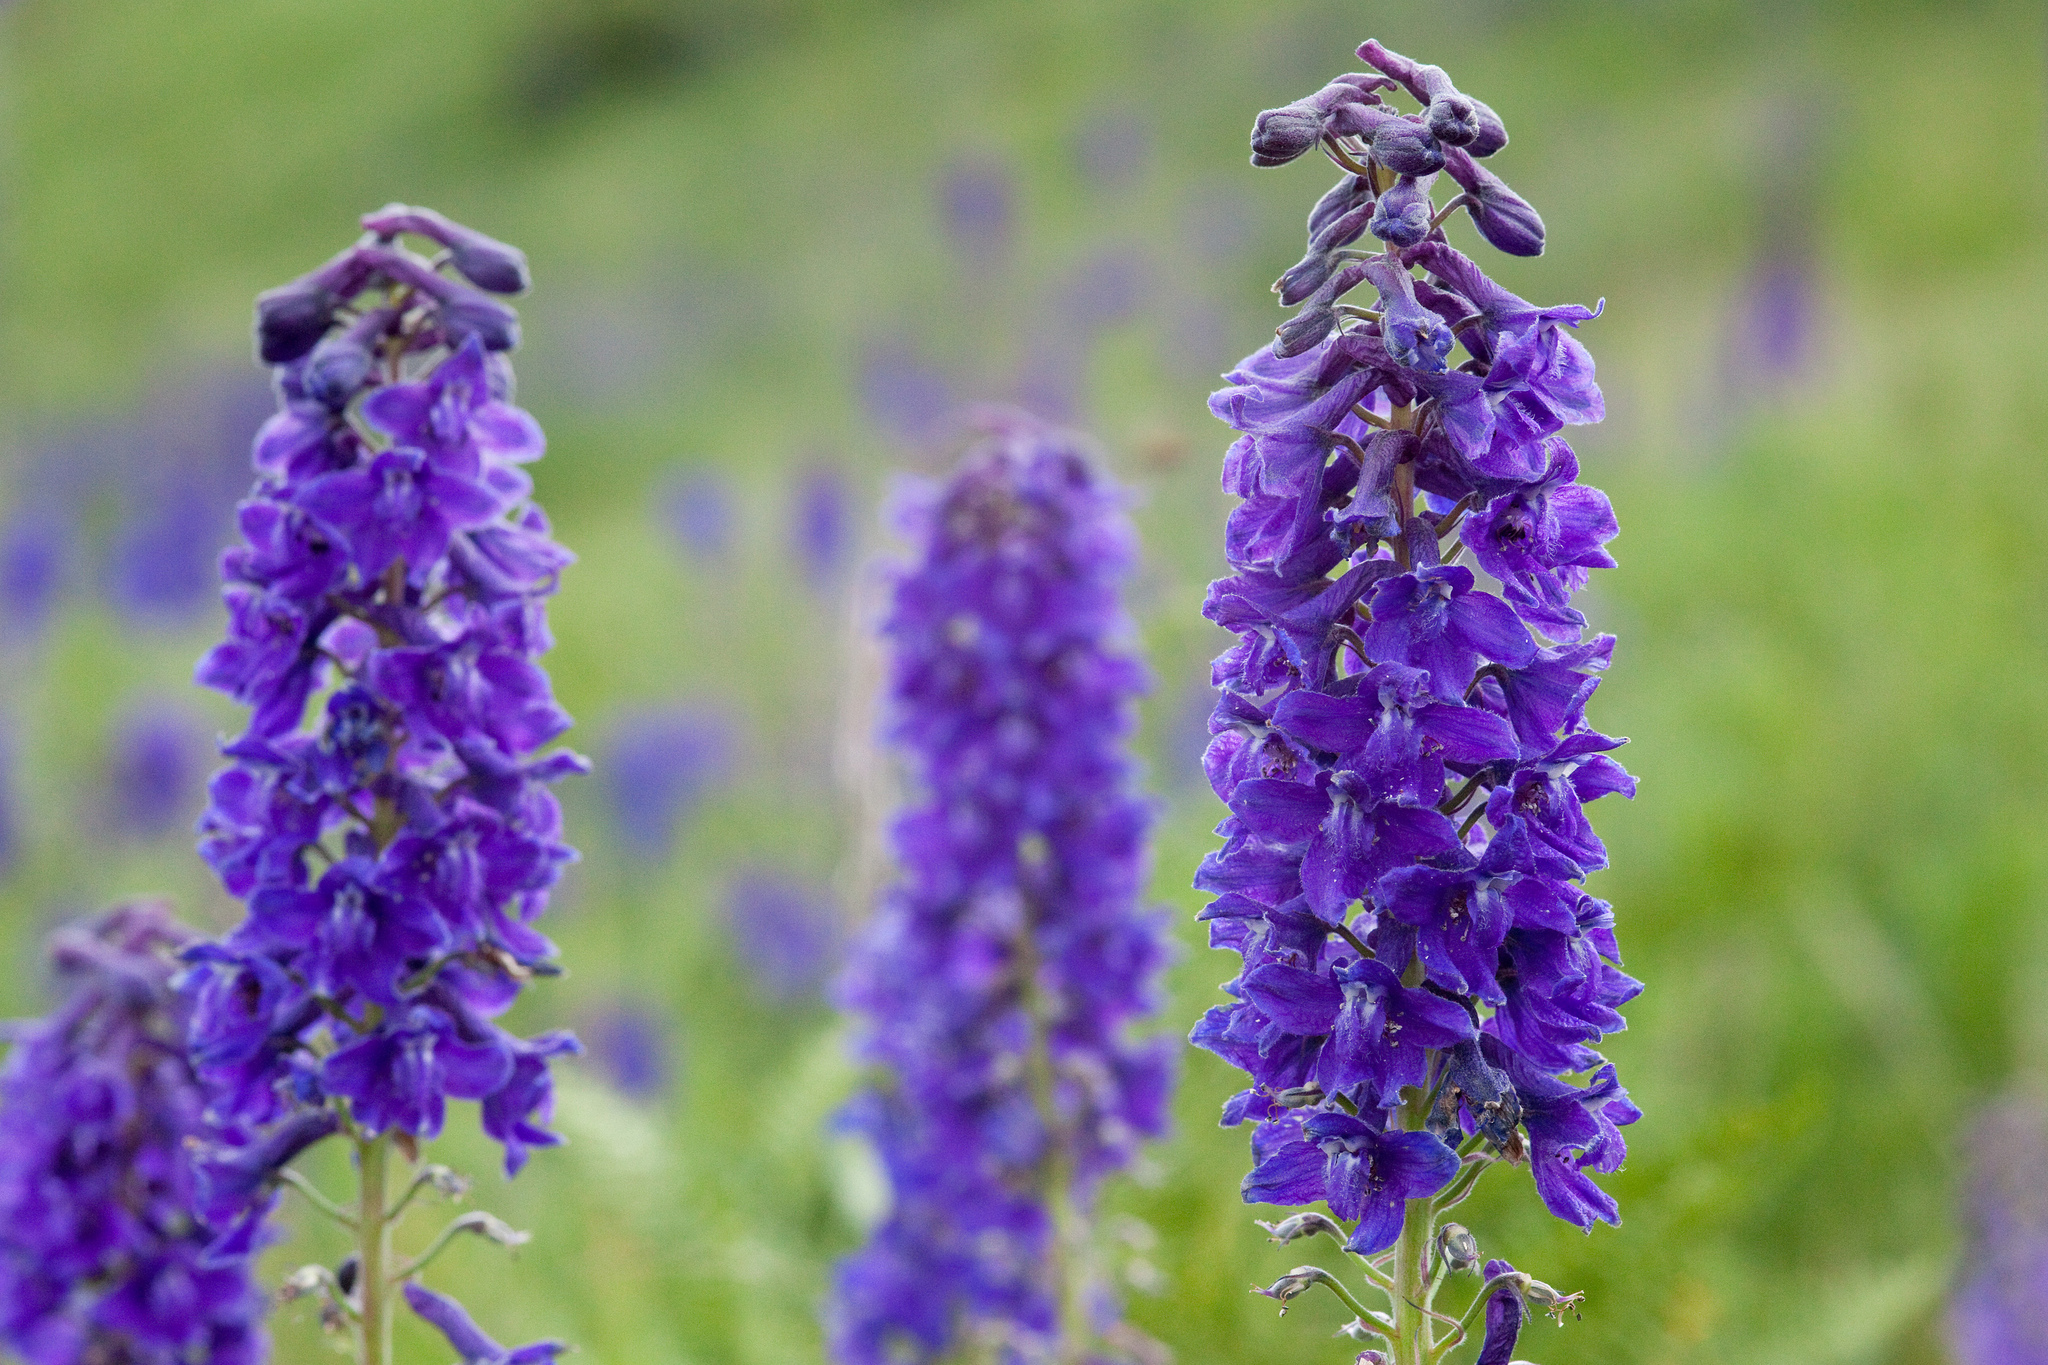 Delphinium geraniifolium with racemes of densely clustered purple flowers